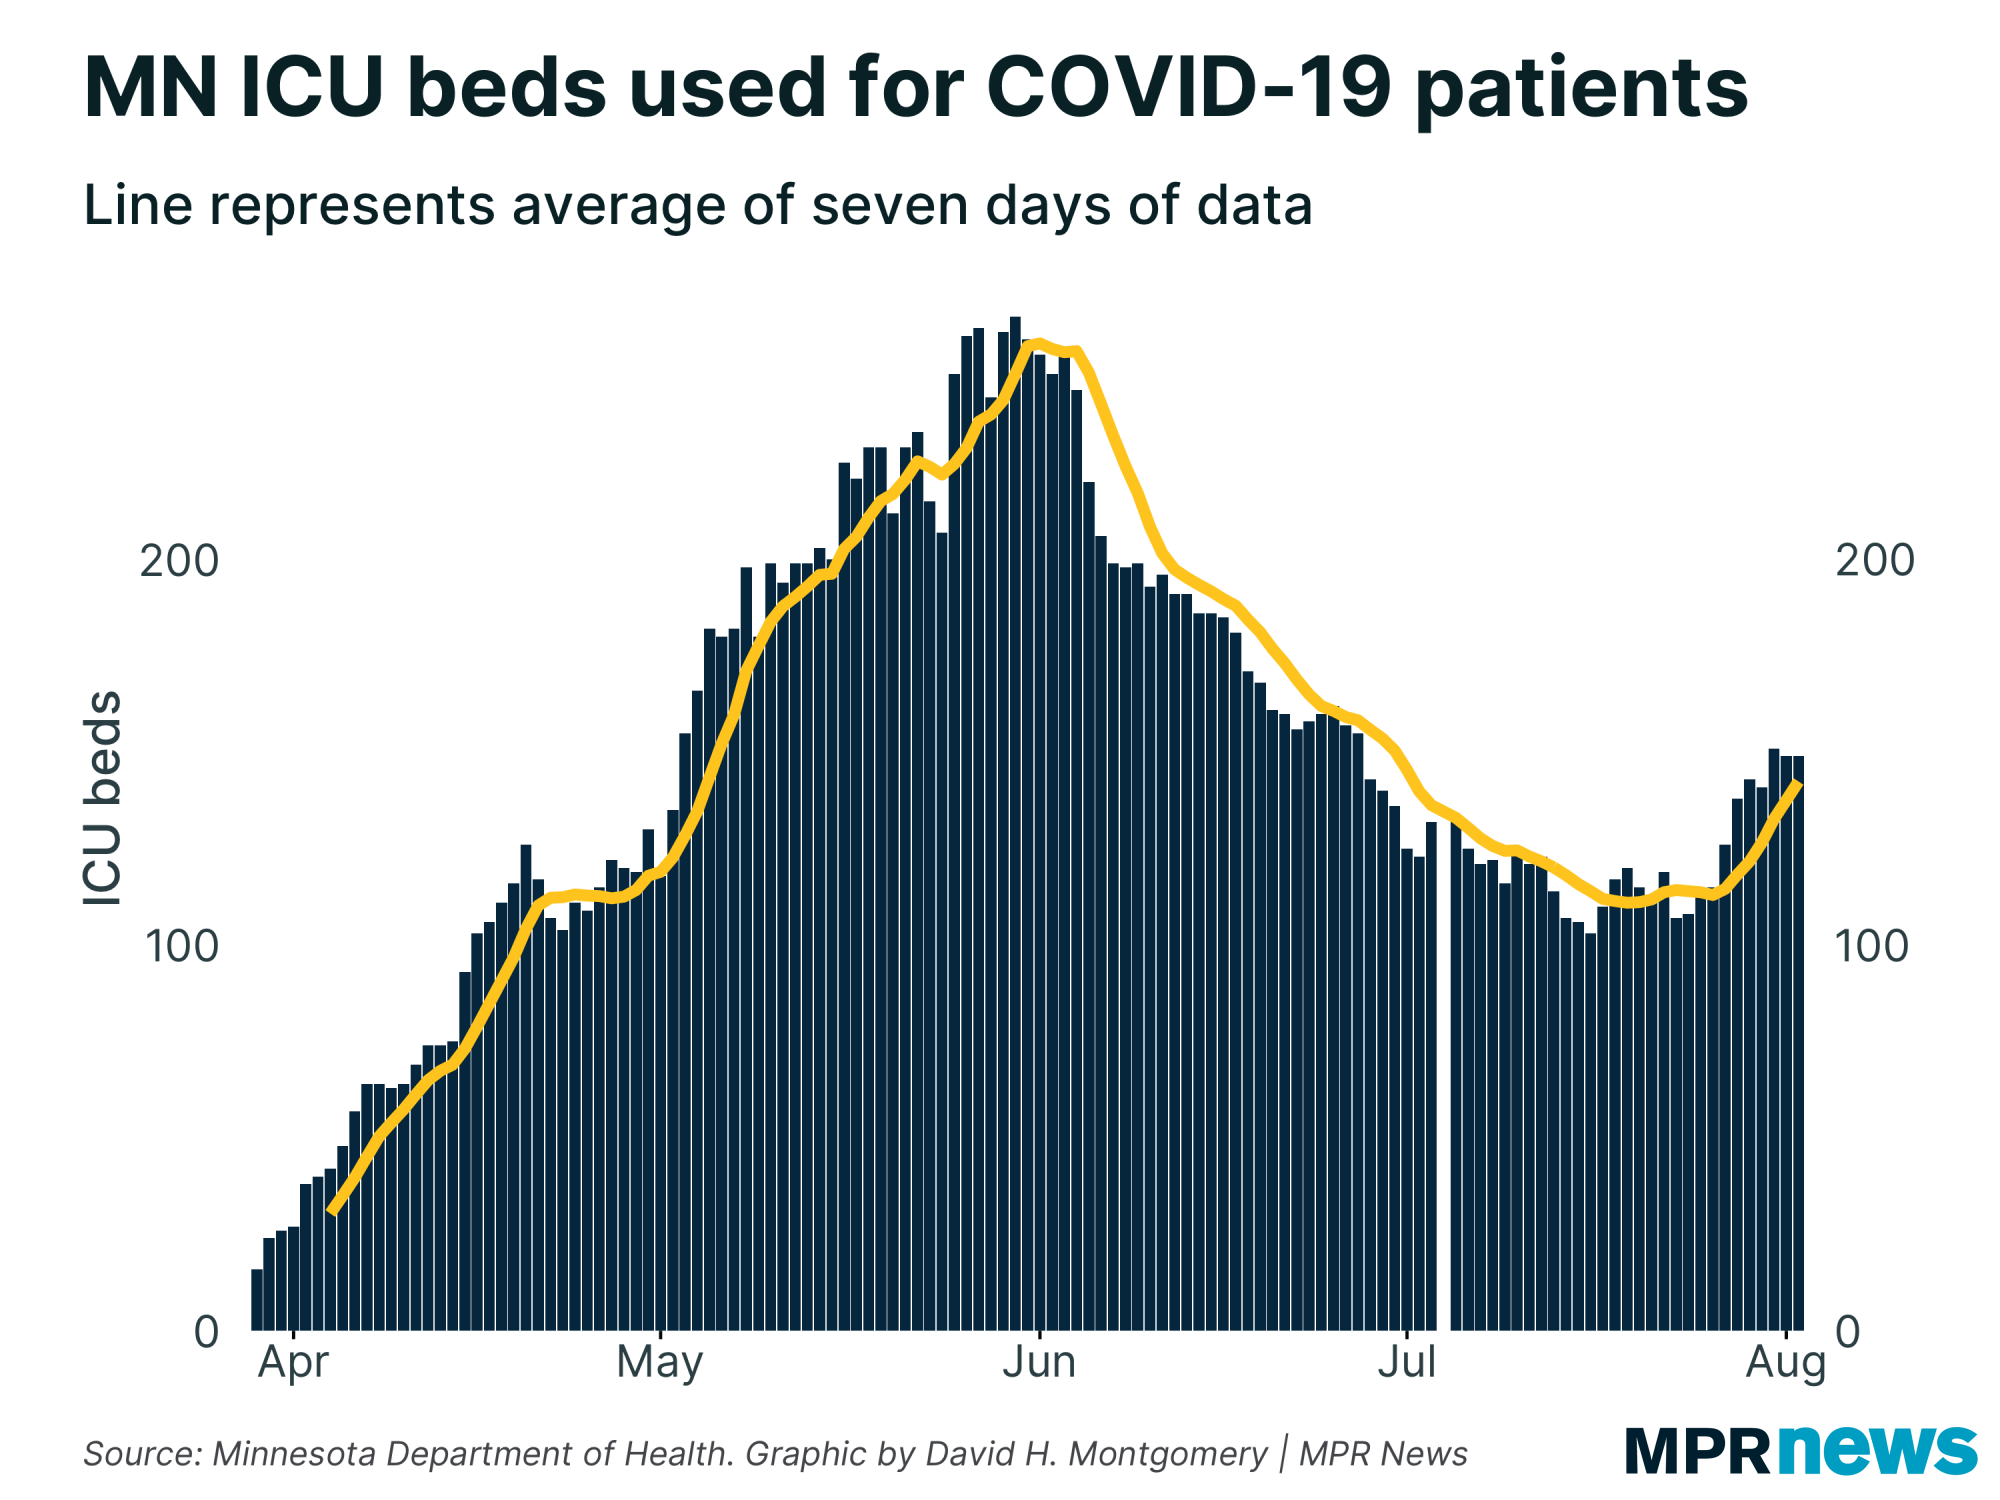 Minnesota ICU beds used for COVID-19 patients